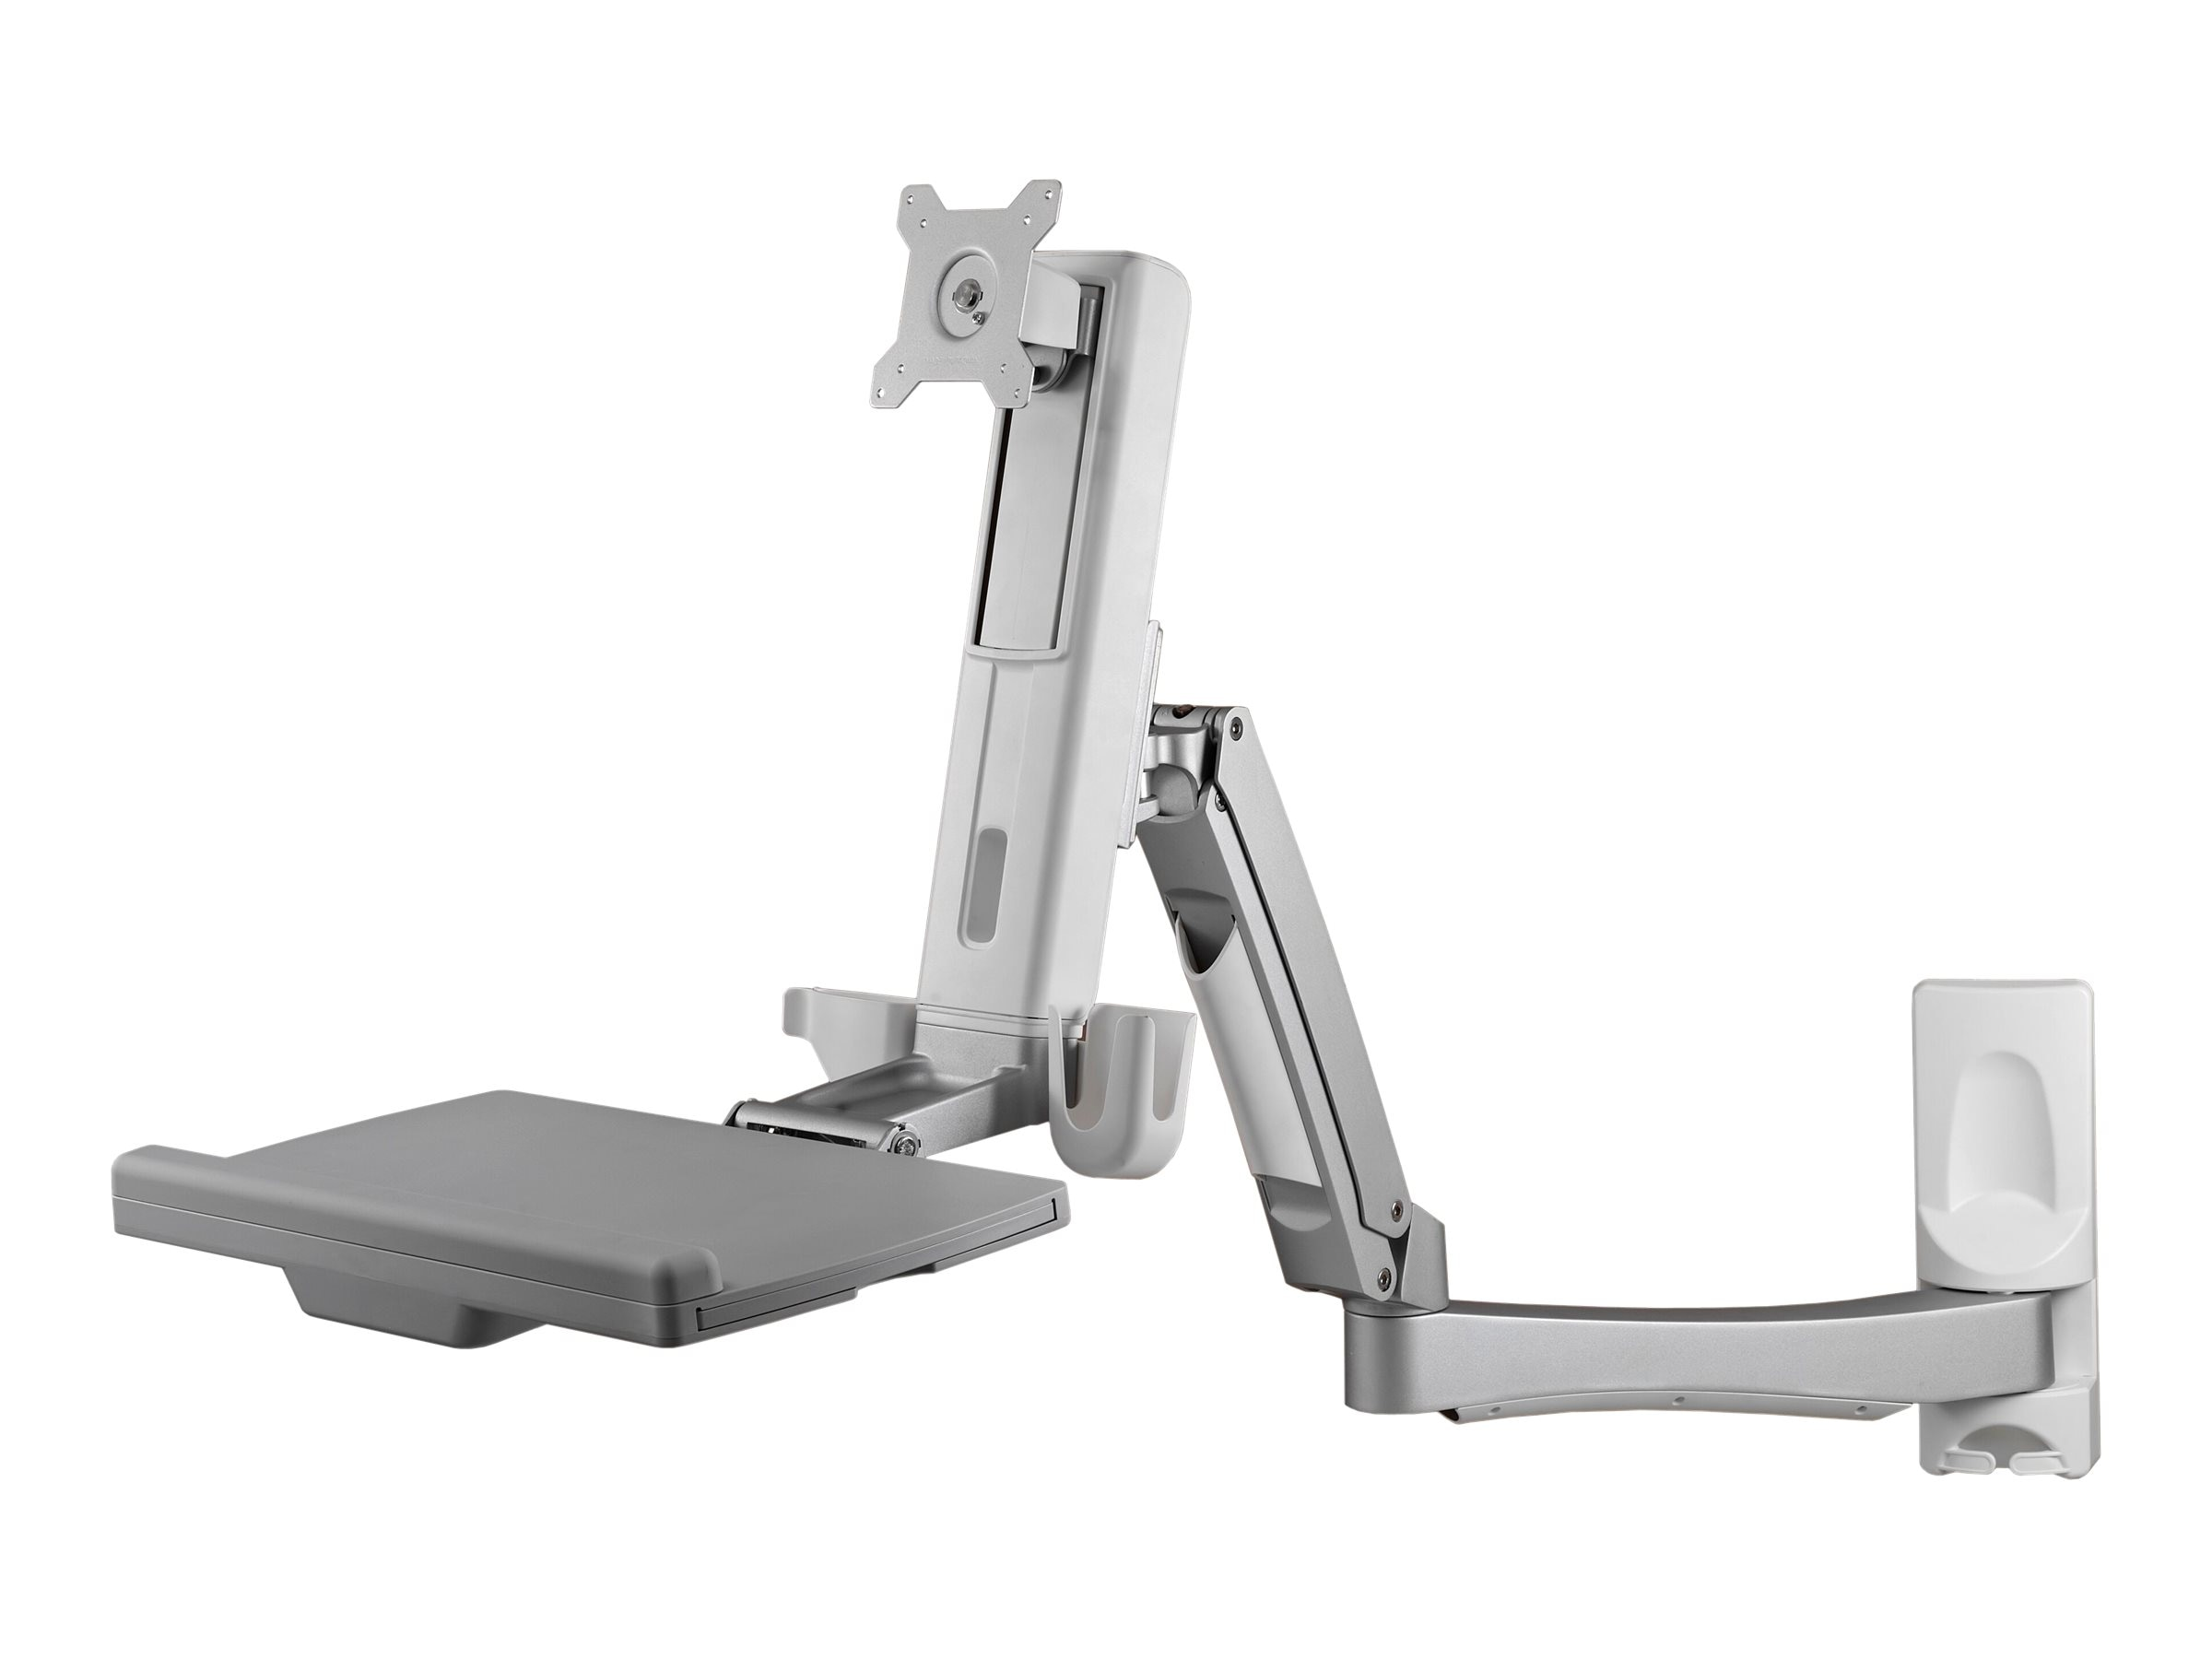 Atdec Wall Mounted Sit-to-stand Workstation, A-STSWW